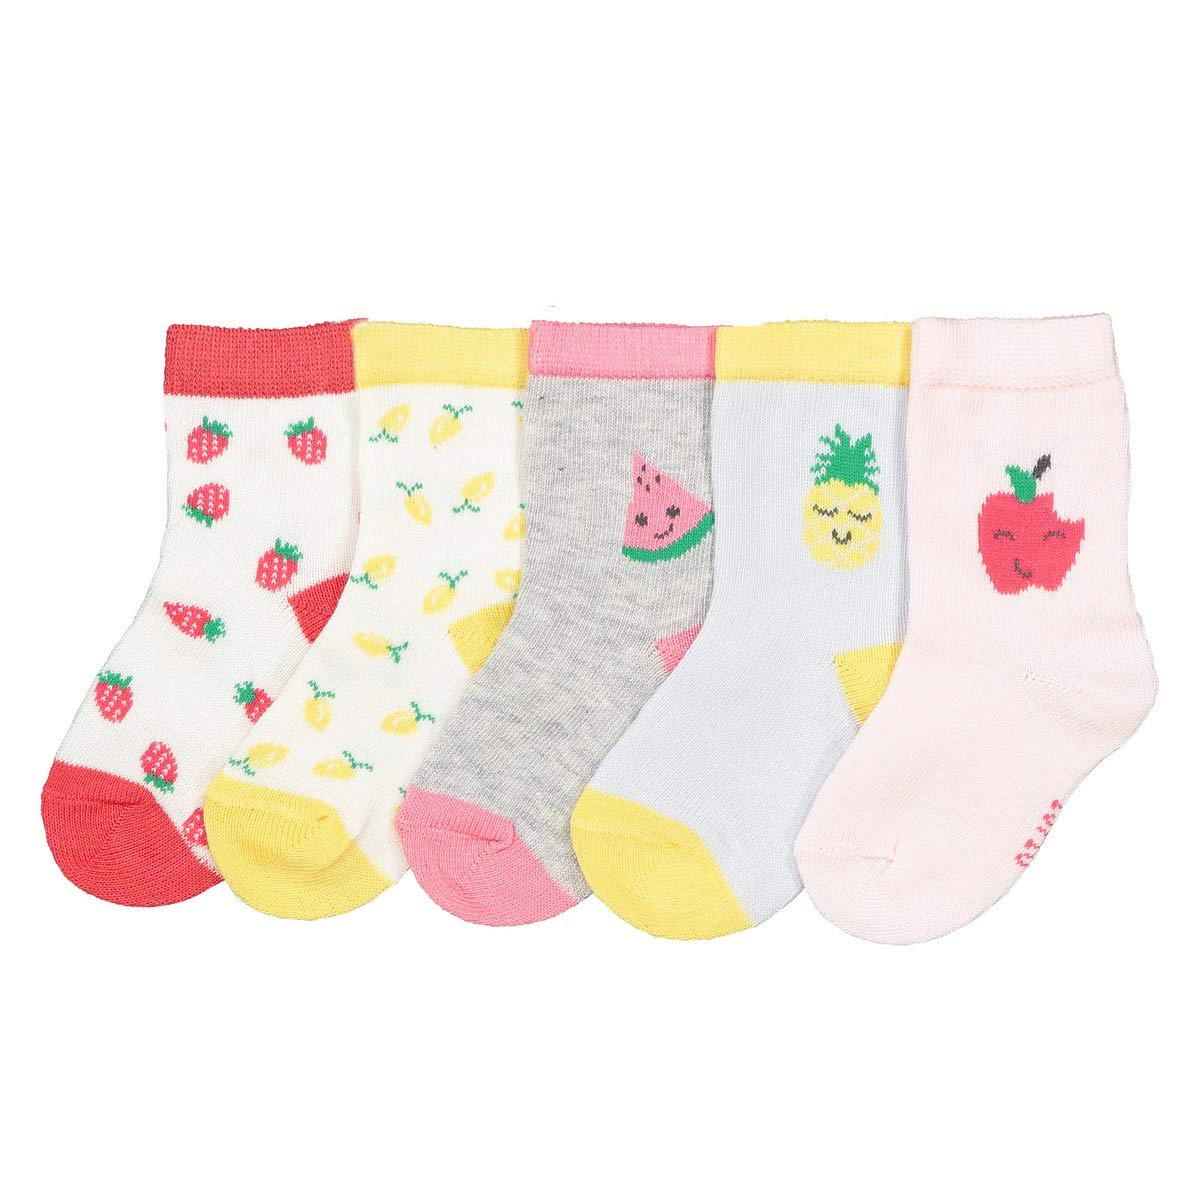 3 To 5.5 8469970-000-1023047-00019-1 La Redoute Collections Big Girls Pack Of 5 Pairs Of Socks Sizes 00//2-6//9.5 Other Size 19//22